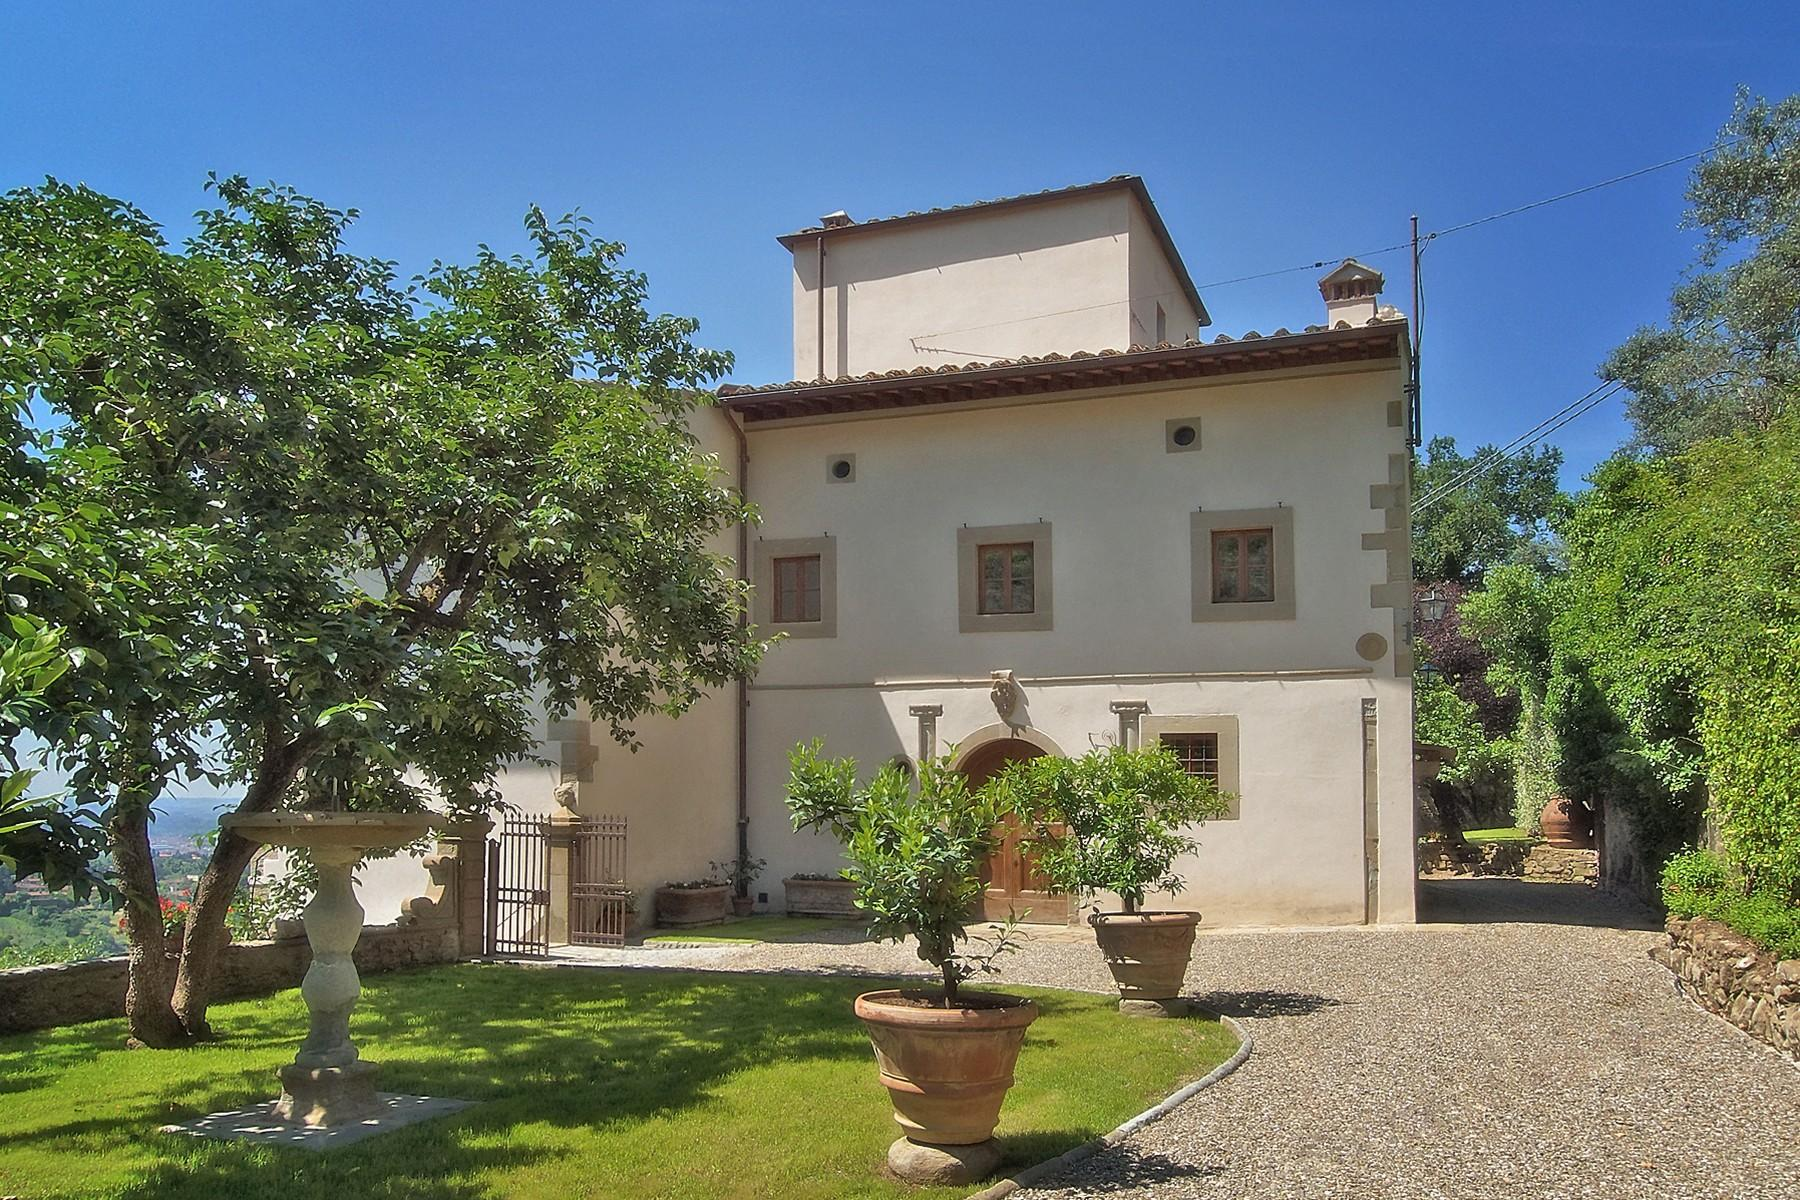 Marvellous villa with pool on the hills of Florence - 4